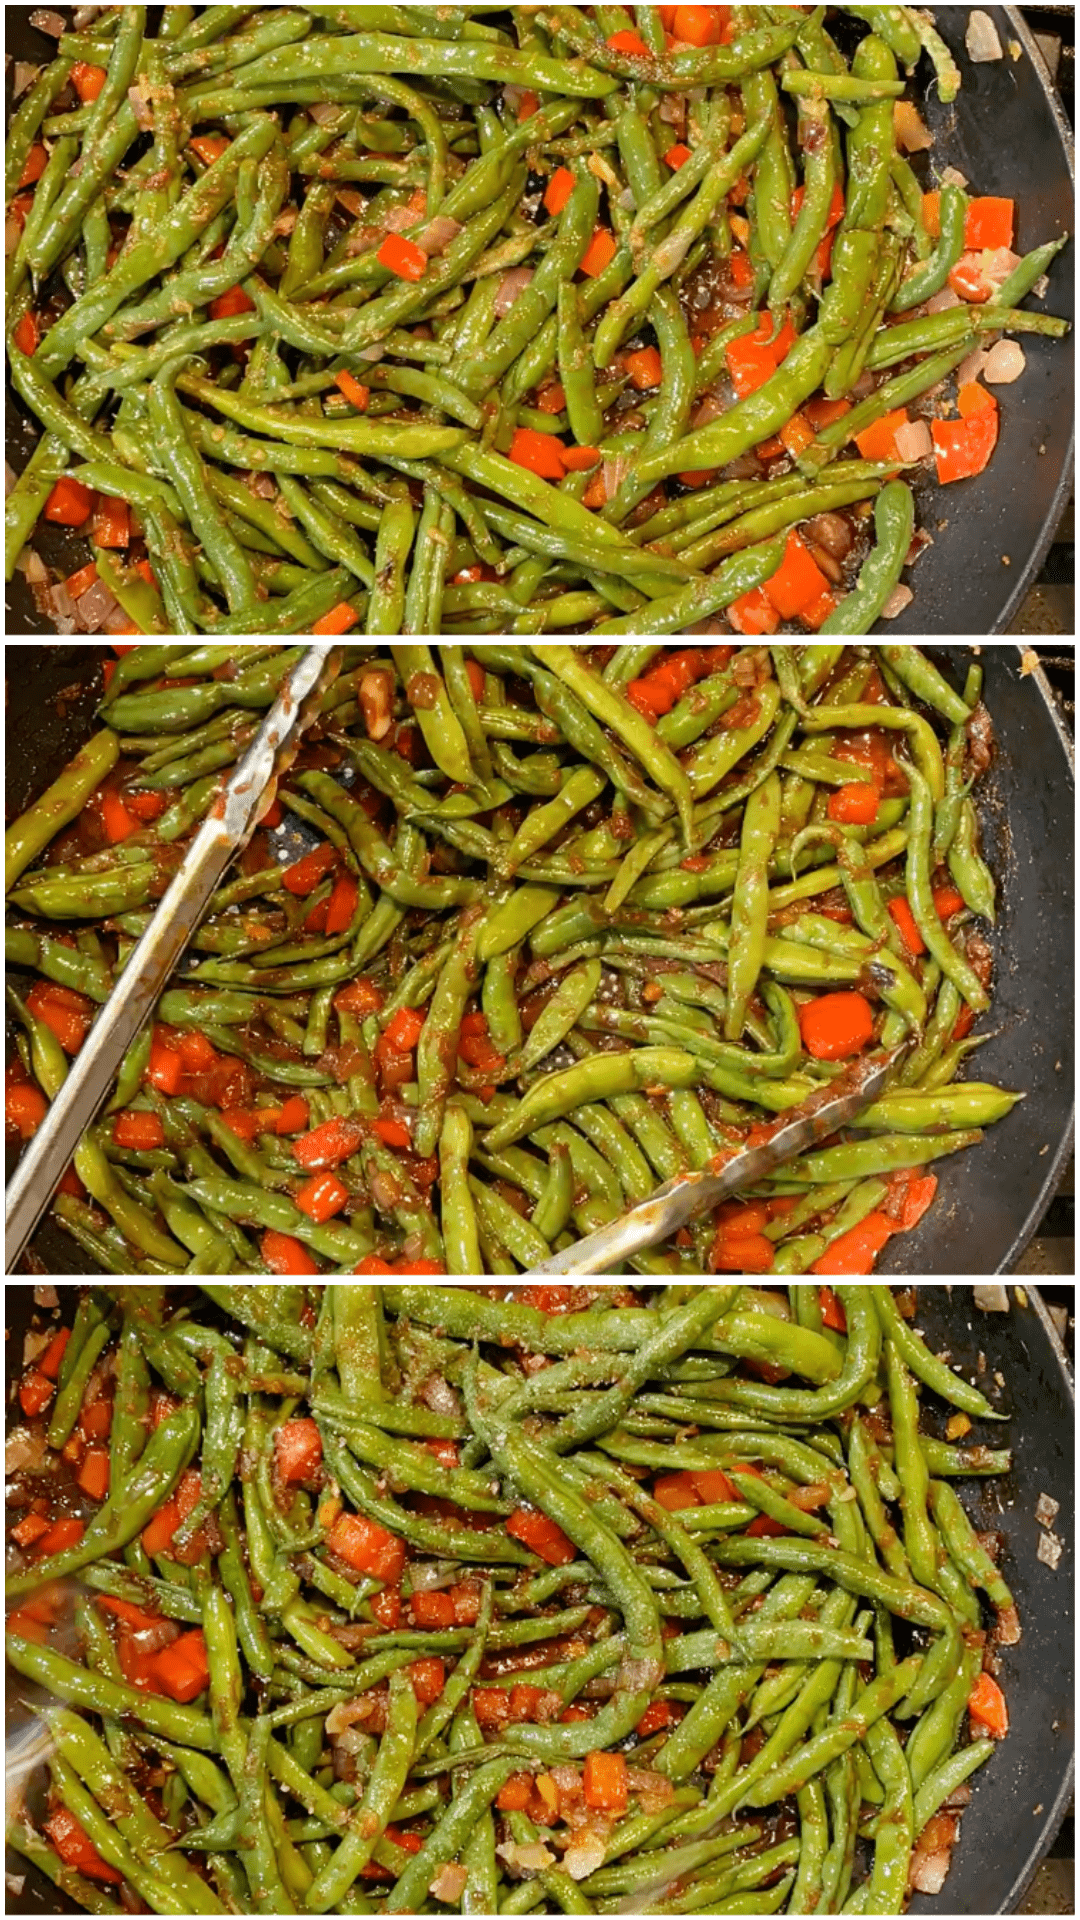 A collage of images showing how to finish green beans with tamari soy sauce.